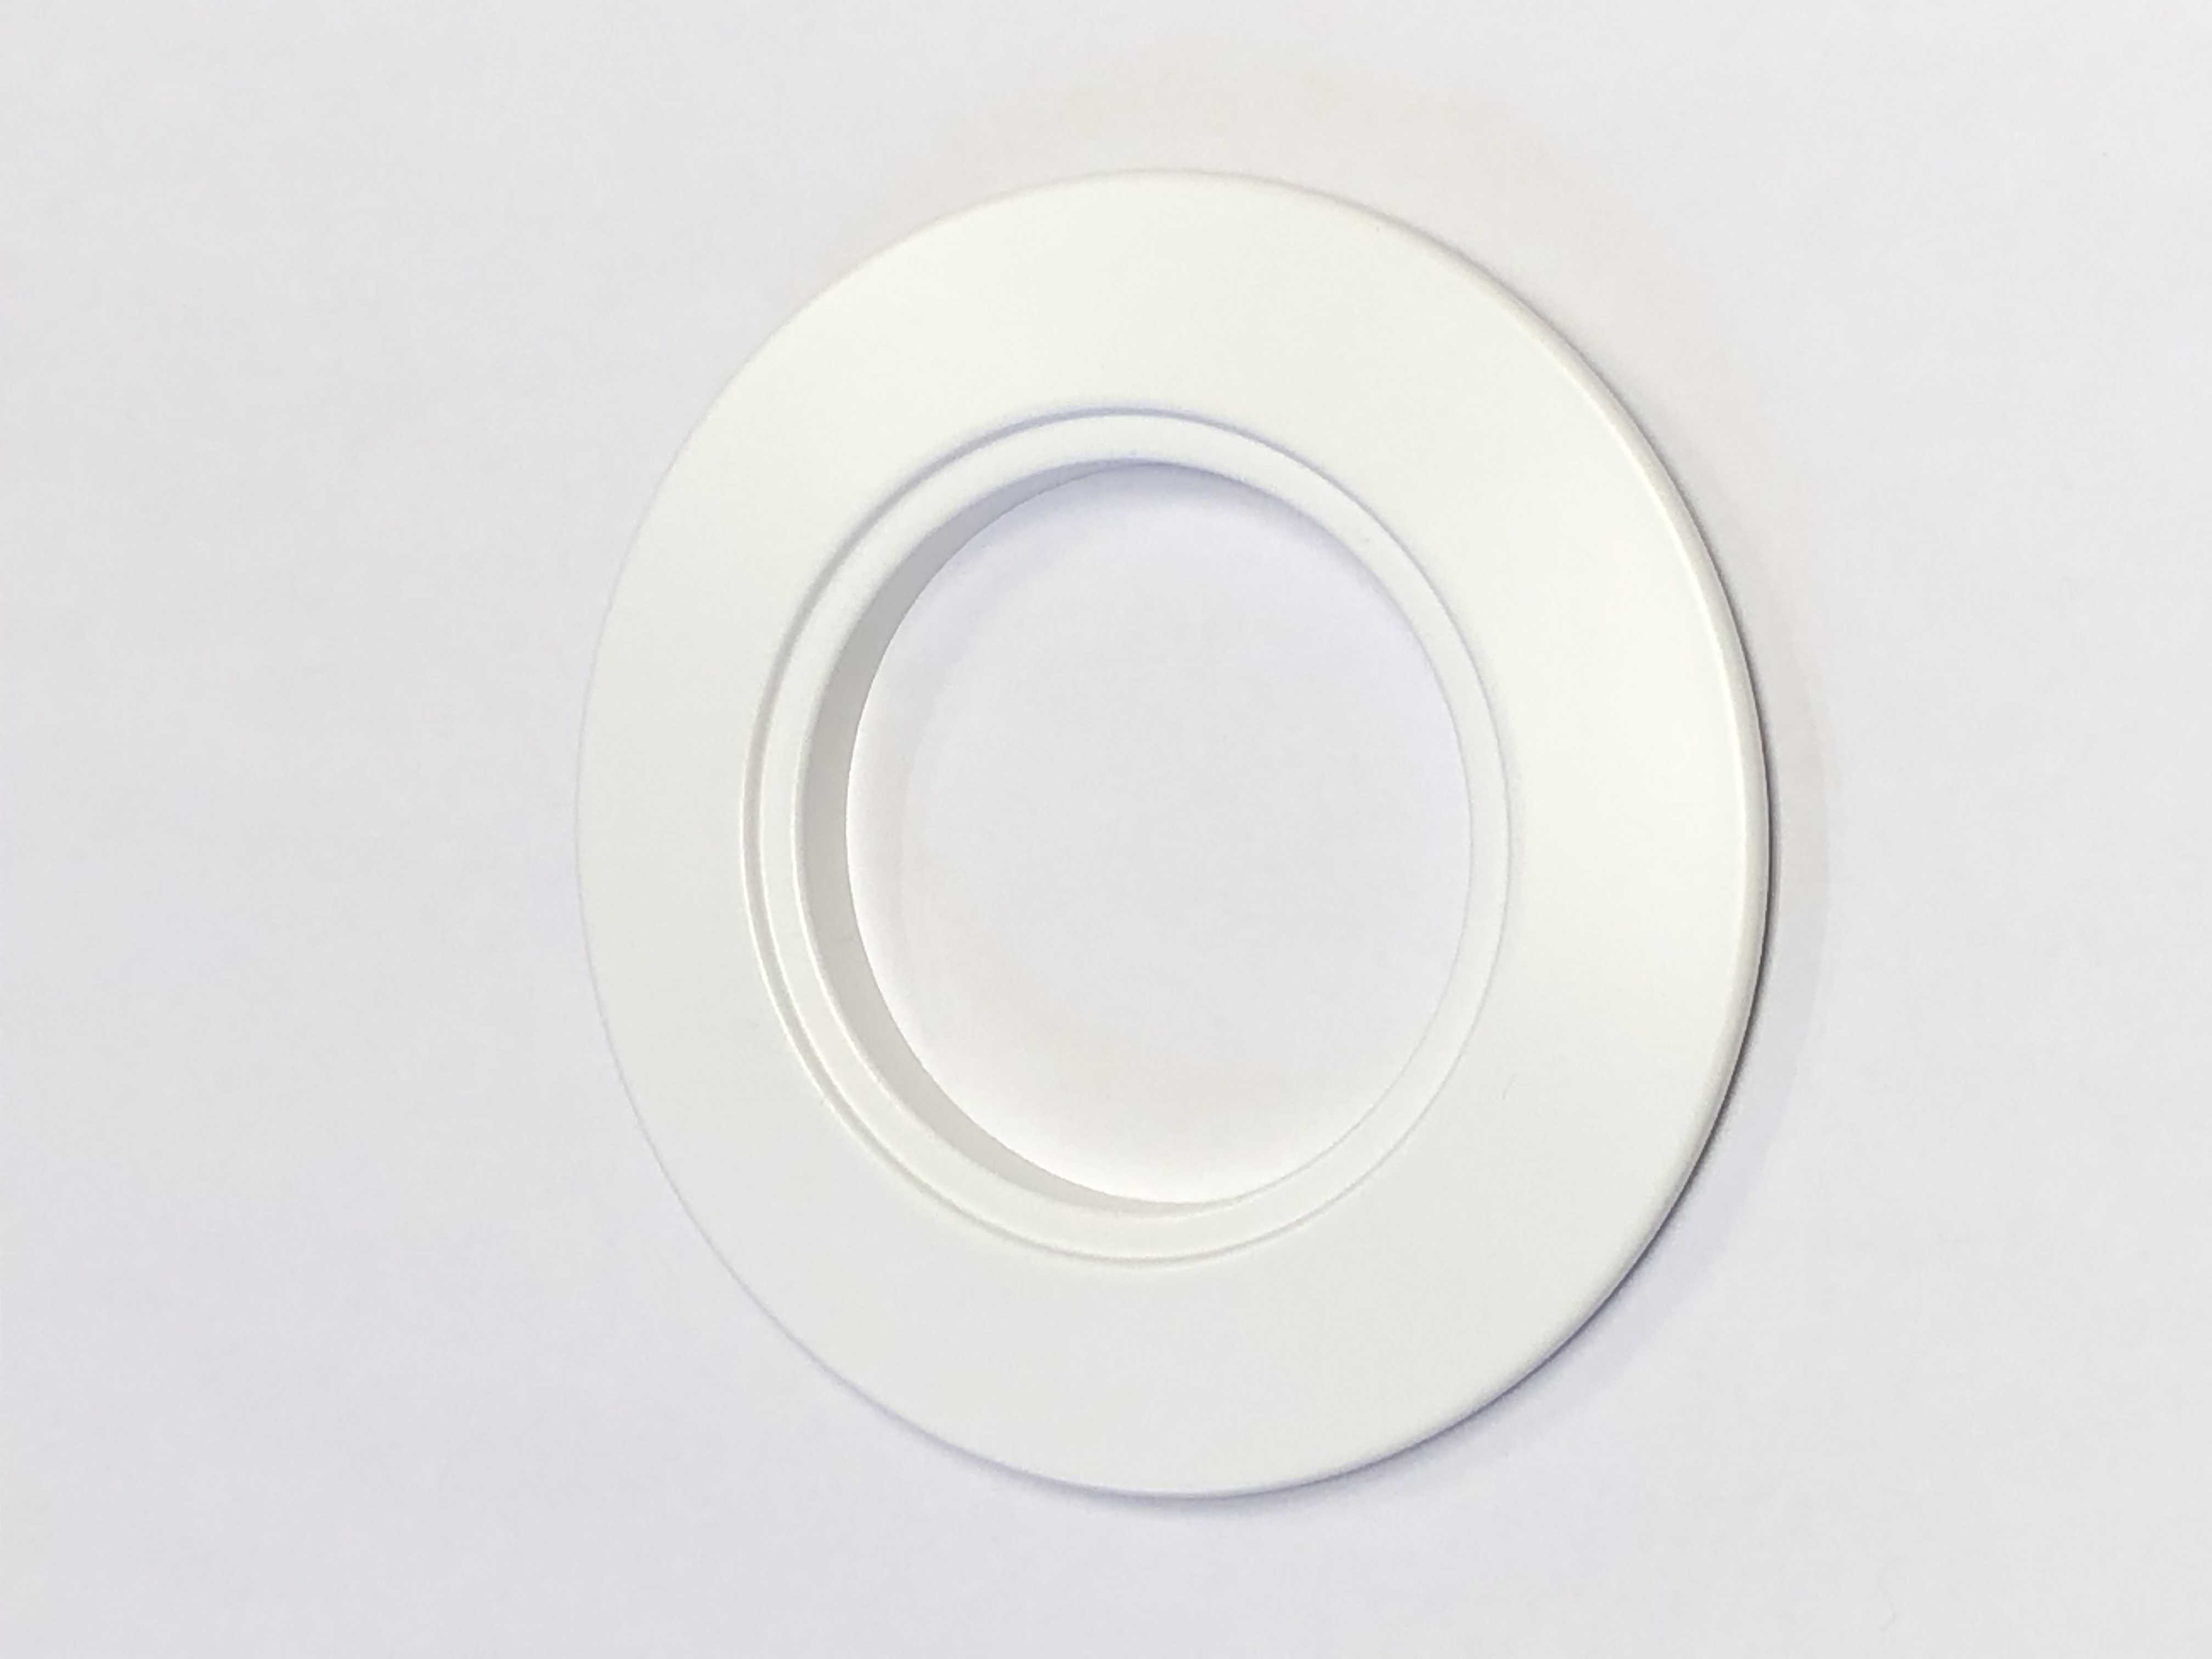 CONVERTER PLATE 100MM WHITE BL FIRESTAY FOR BELL FIRESTAY FITTING